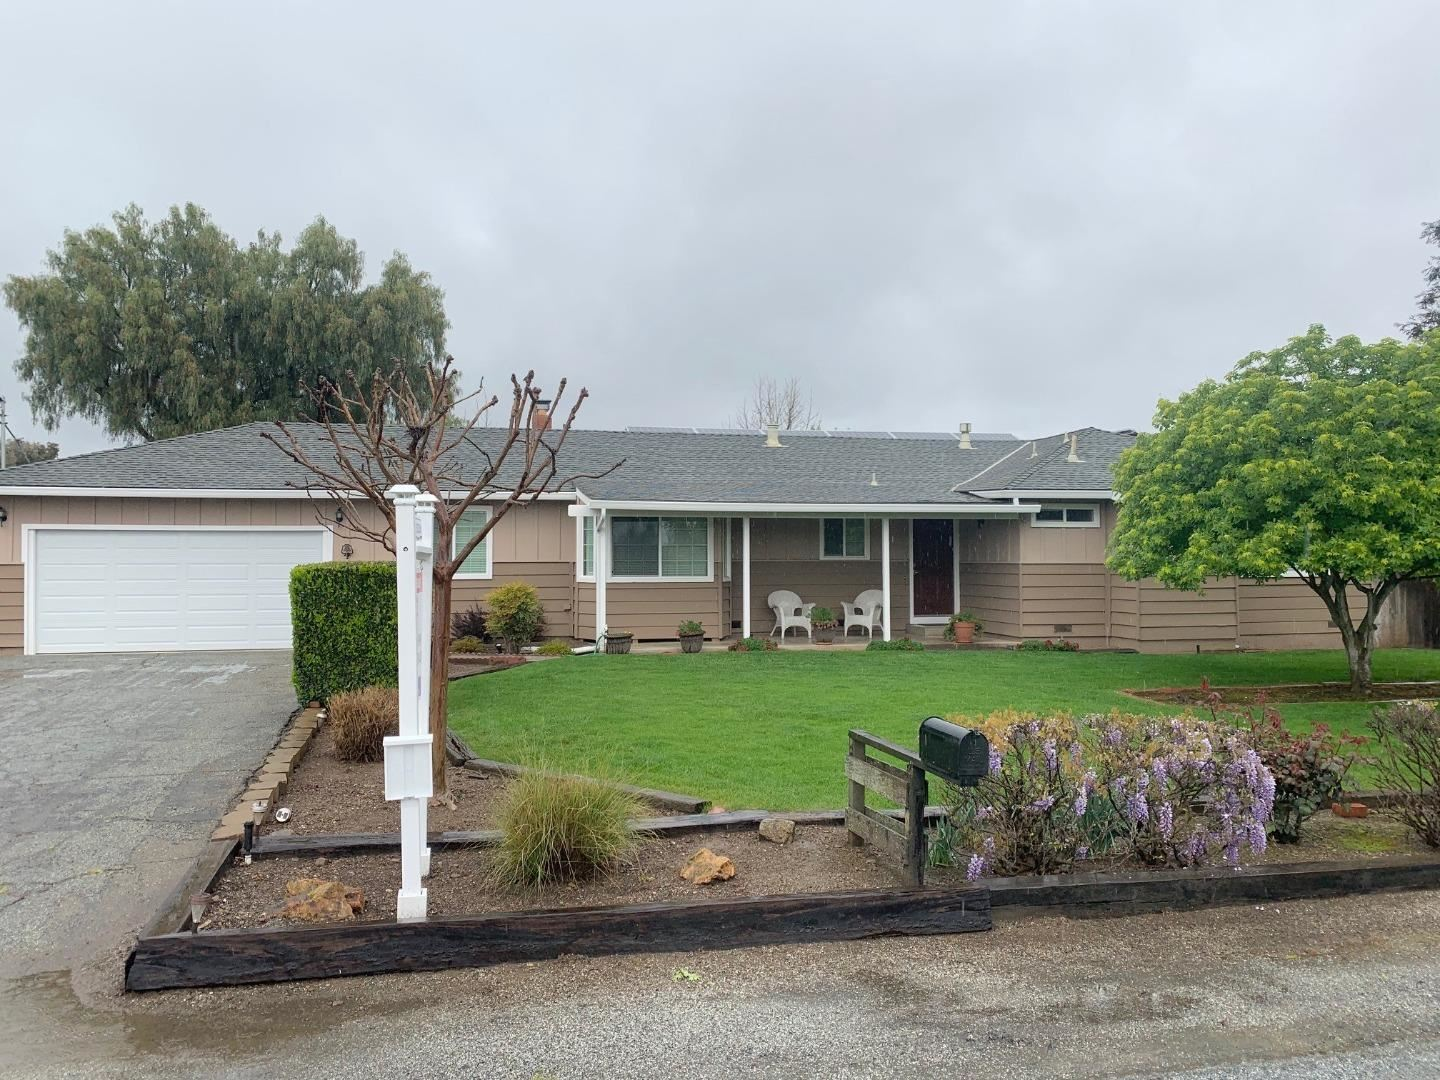 15740 Ranchero DR, Morgan Hill, CA 95037 - #: ML81788720